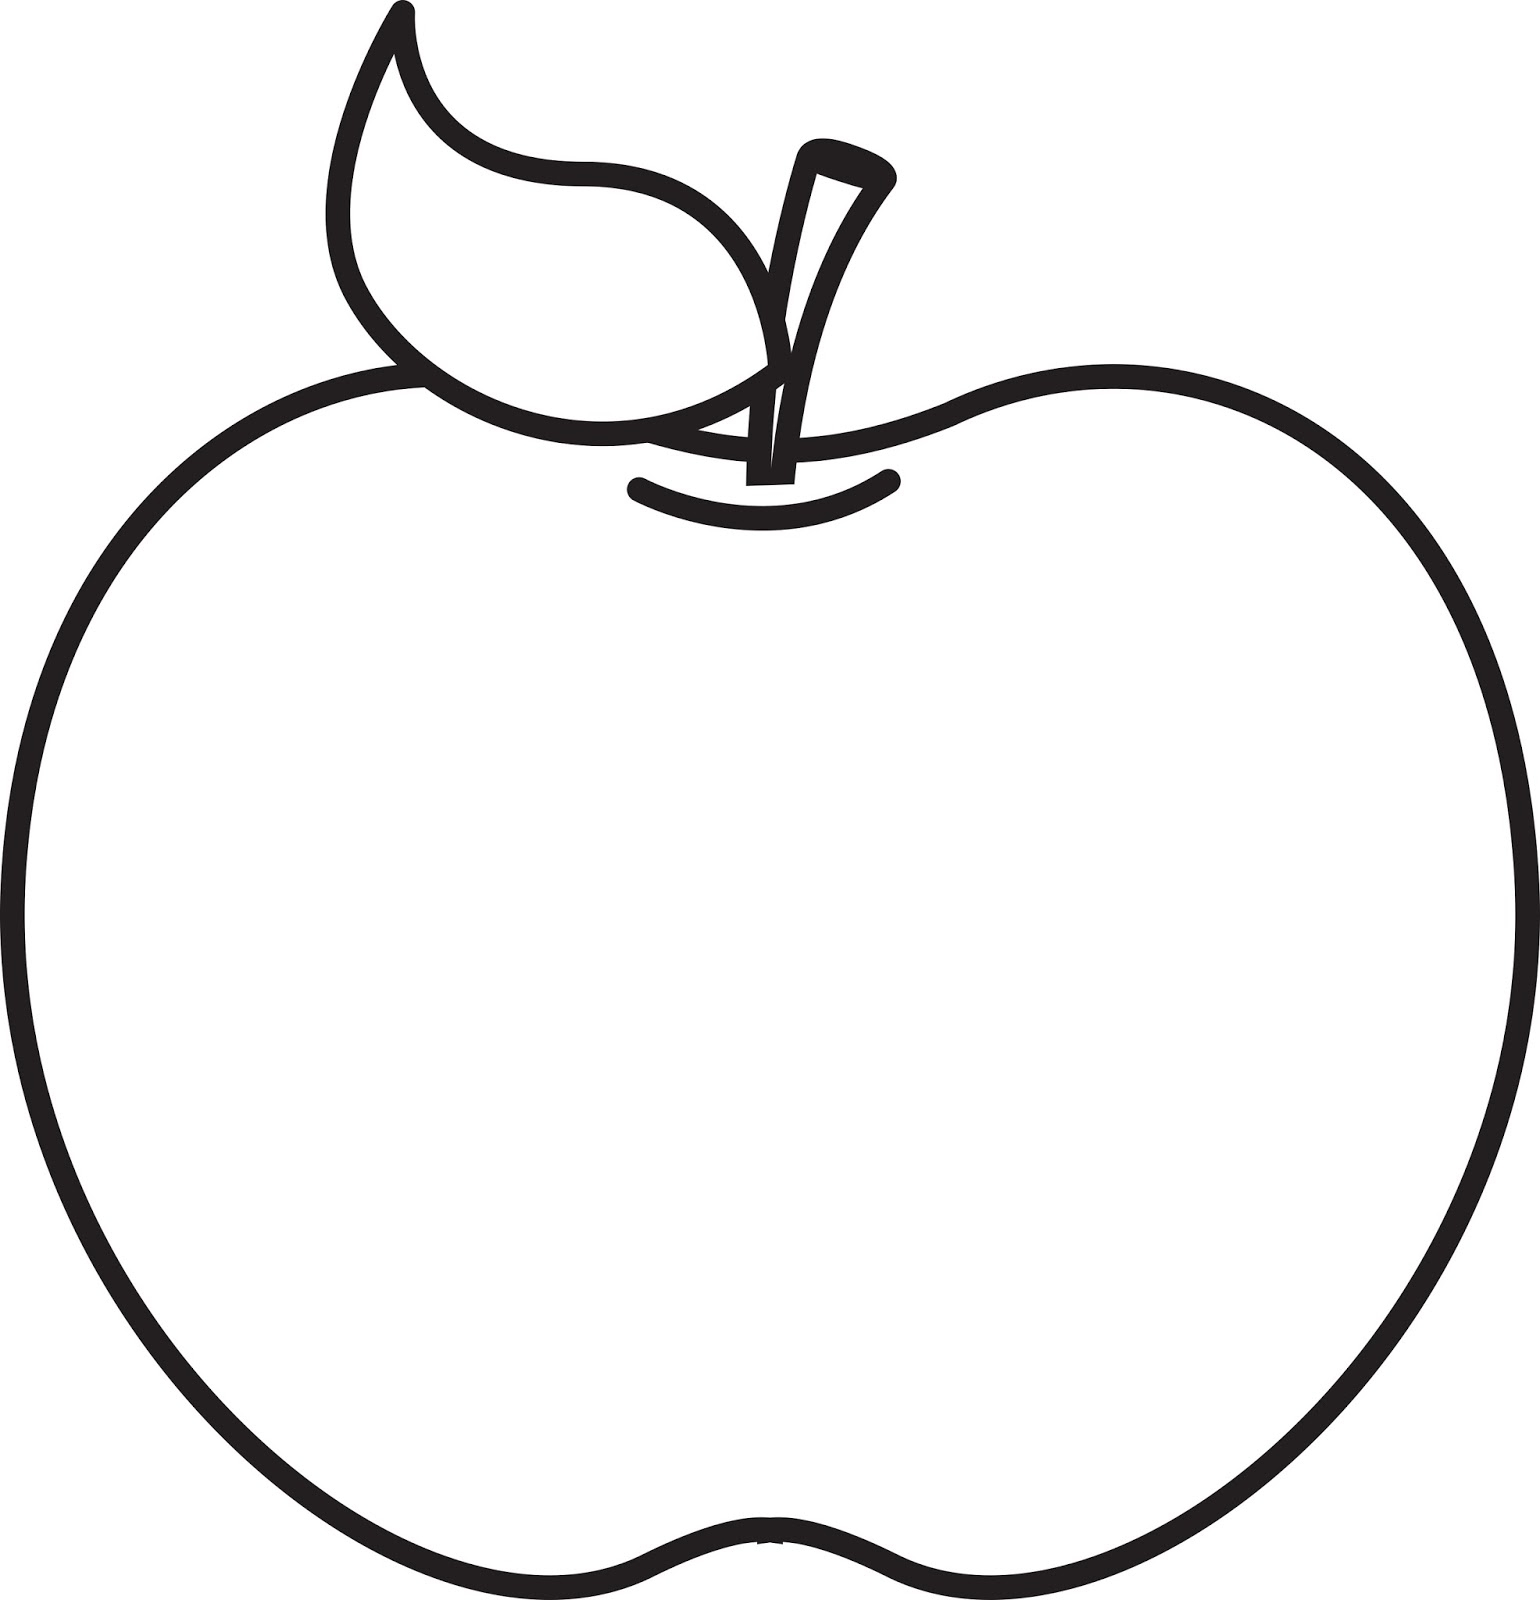 Apple clipart black and white-Apple clipart black and white-8